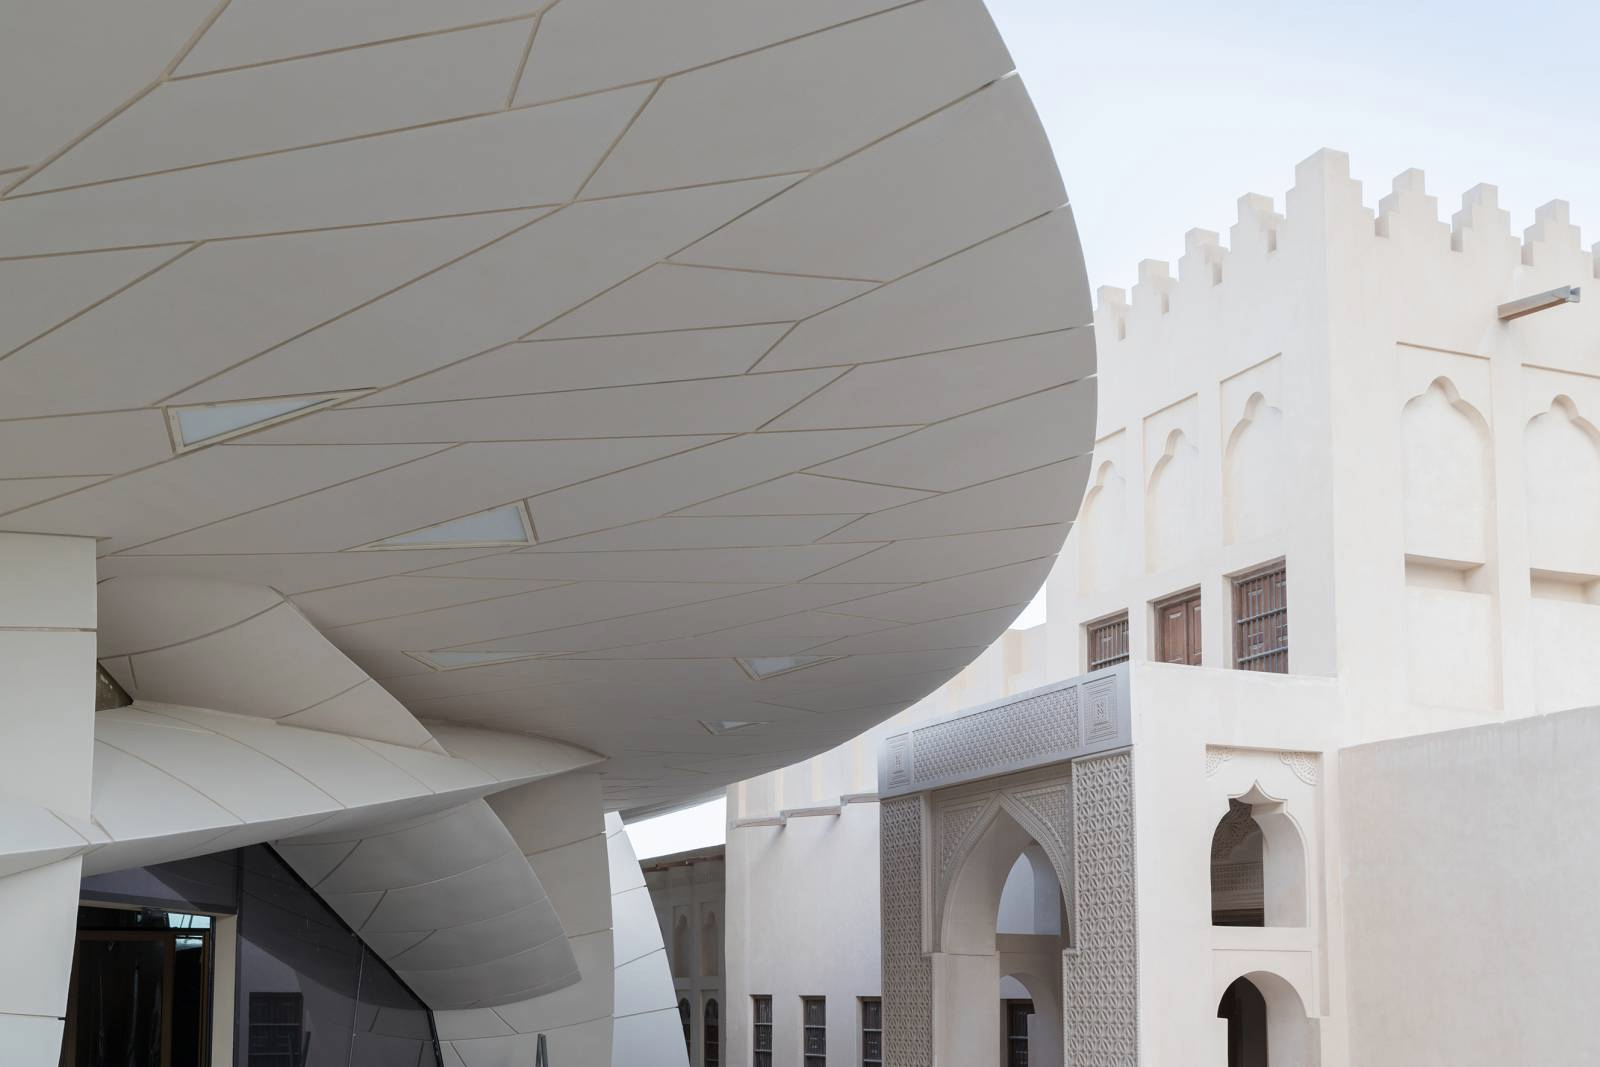 11 new museums opening in 2019: National Museum of Qatar